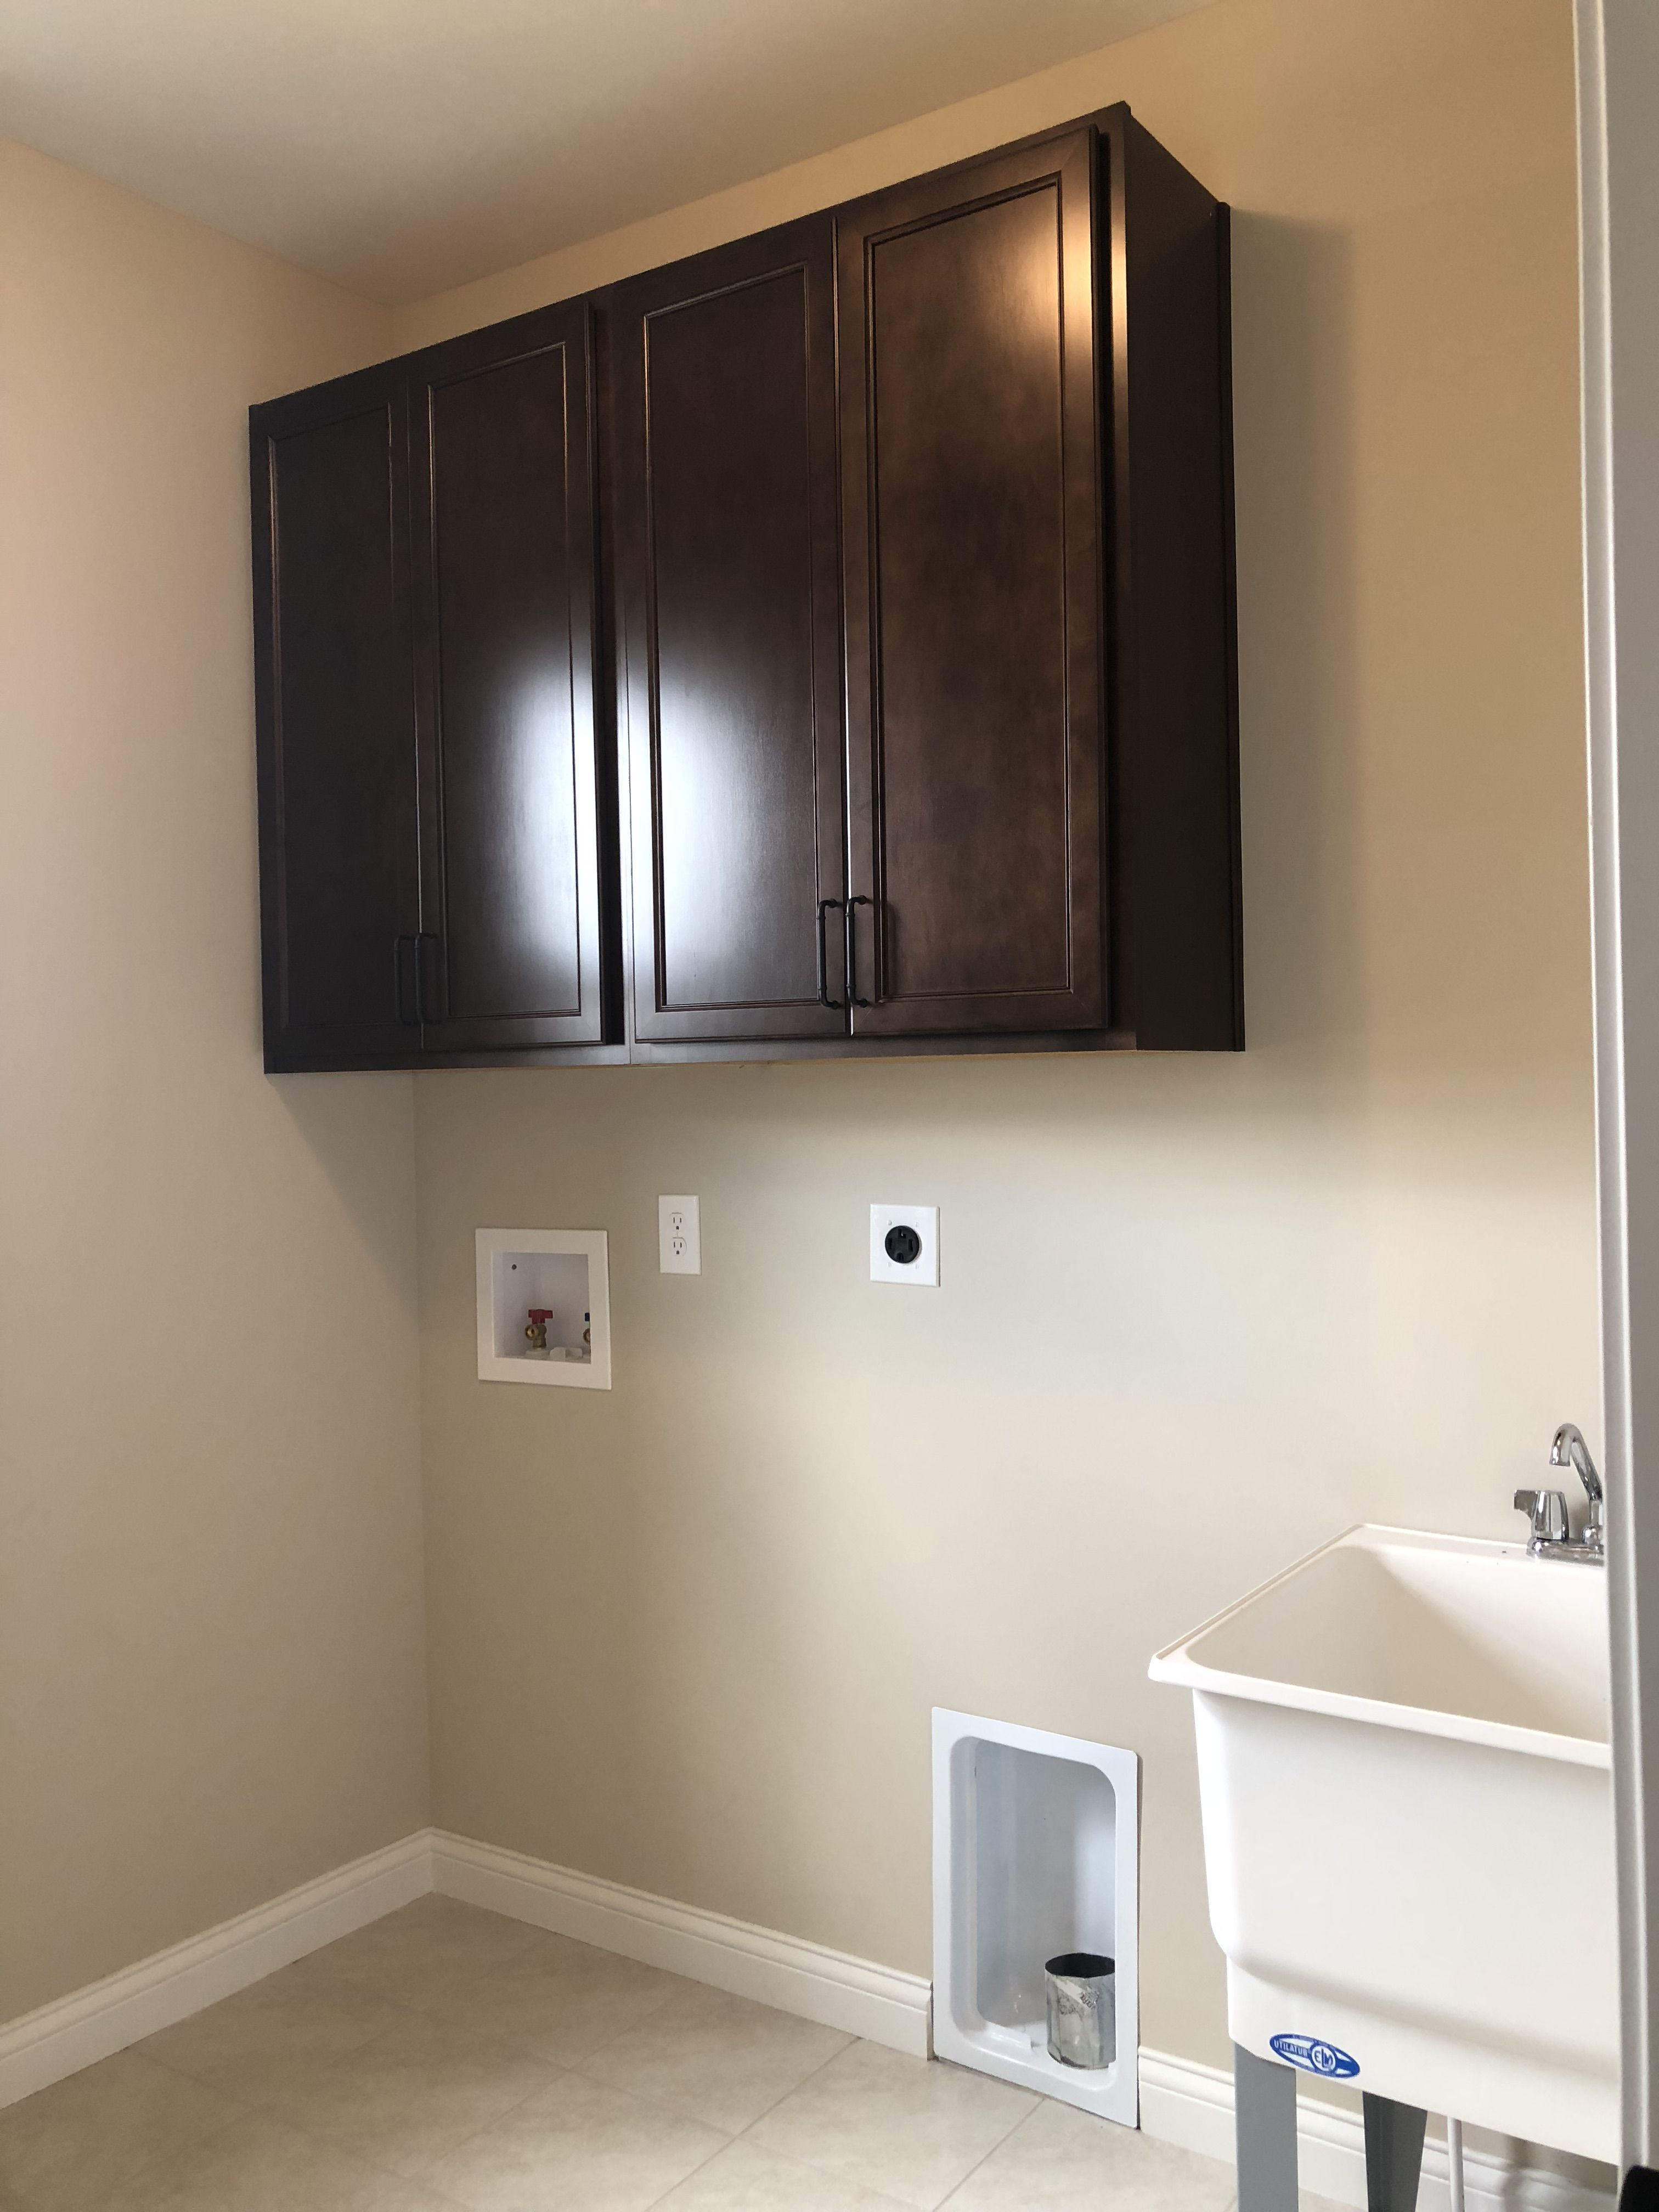 Cabinets For Washer And Dryer